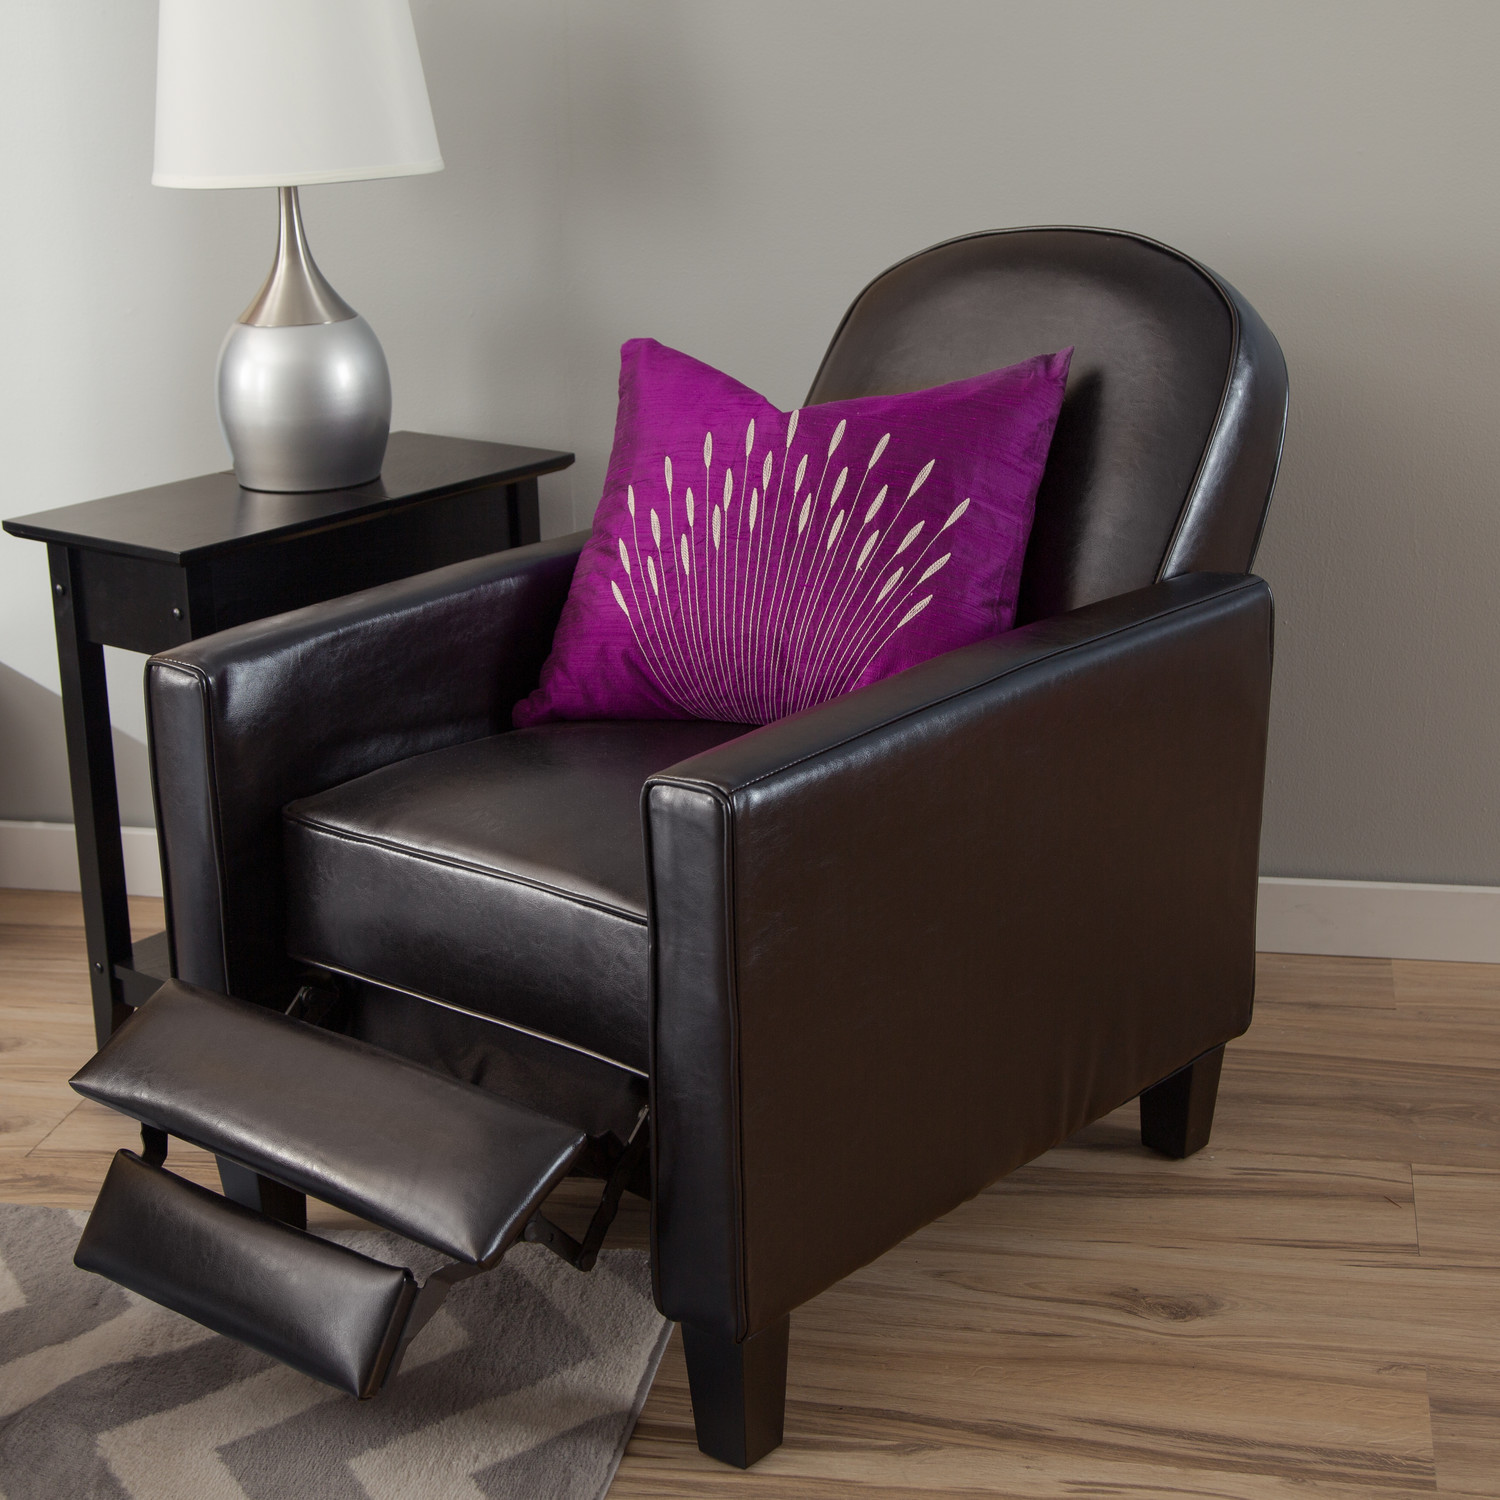 Leather Recliner Chairs David Jones There Are Recliners Designed For Your Shorter Legs Best